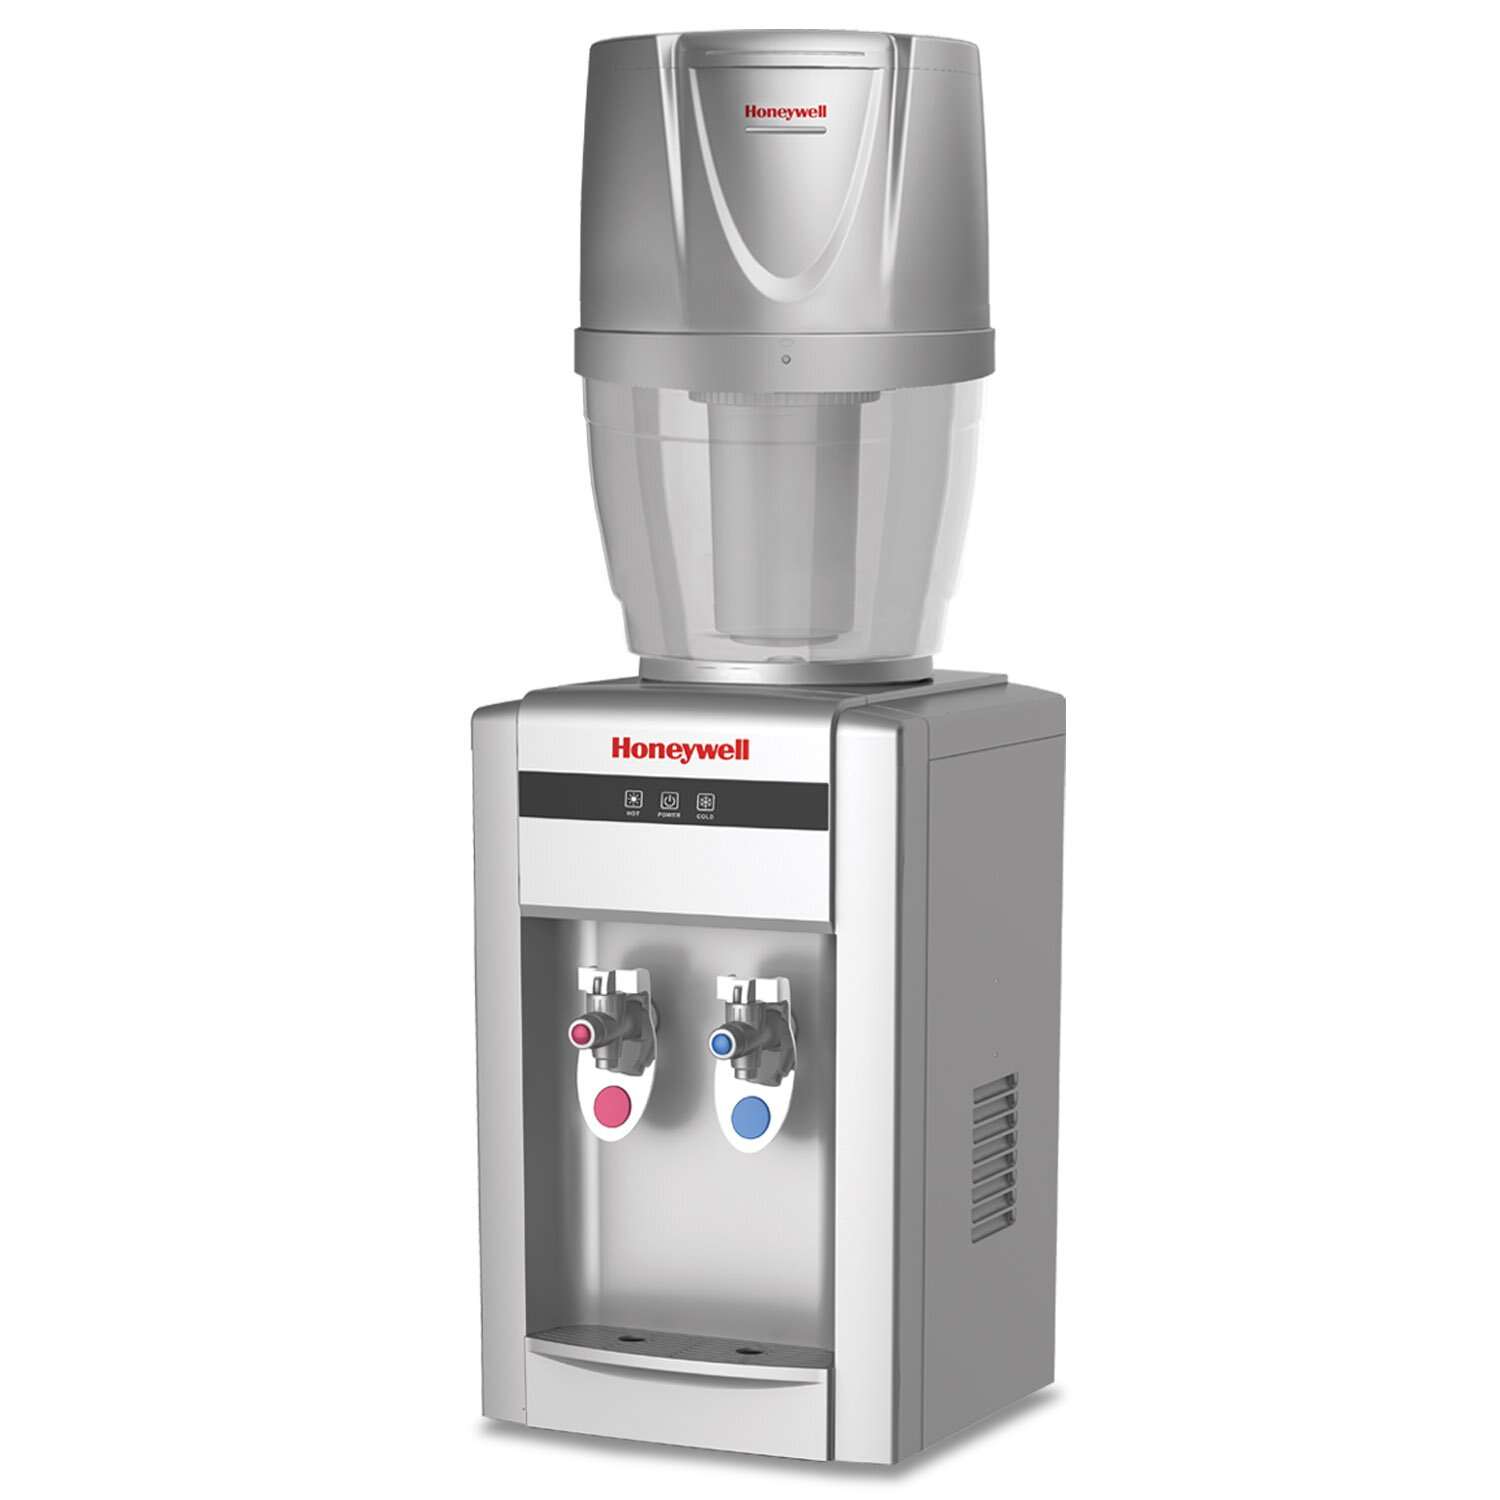 honeywell countertop hot and cold water cooler u0026 reviews wayfair honeywell countertop hot and cold water cooler reviews wayfair - Countertop Water Dispenser